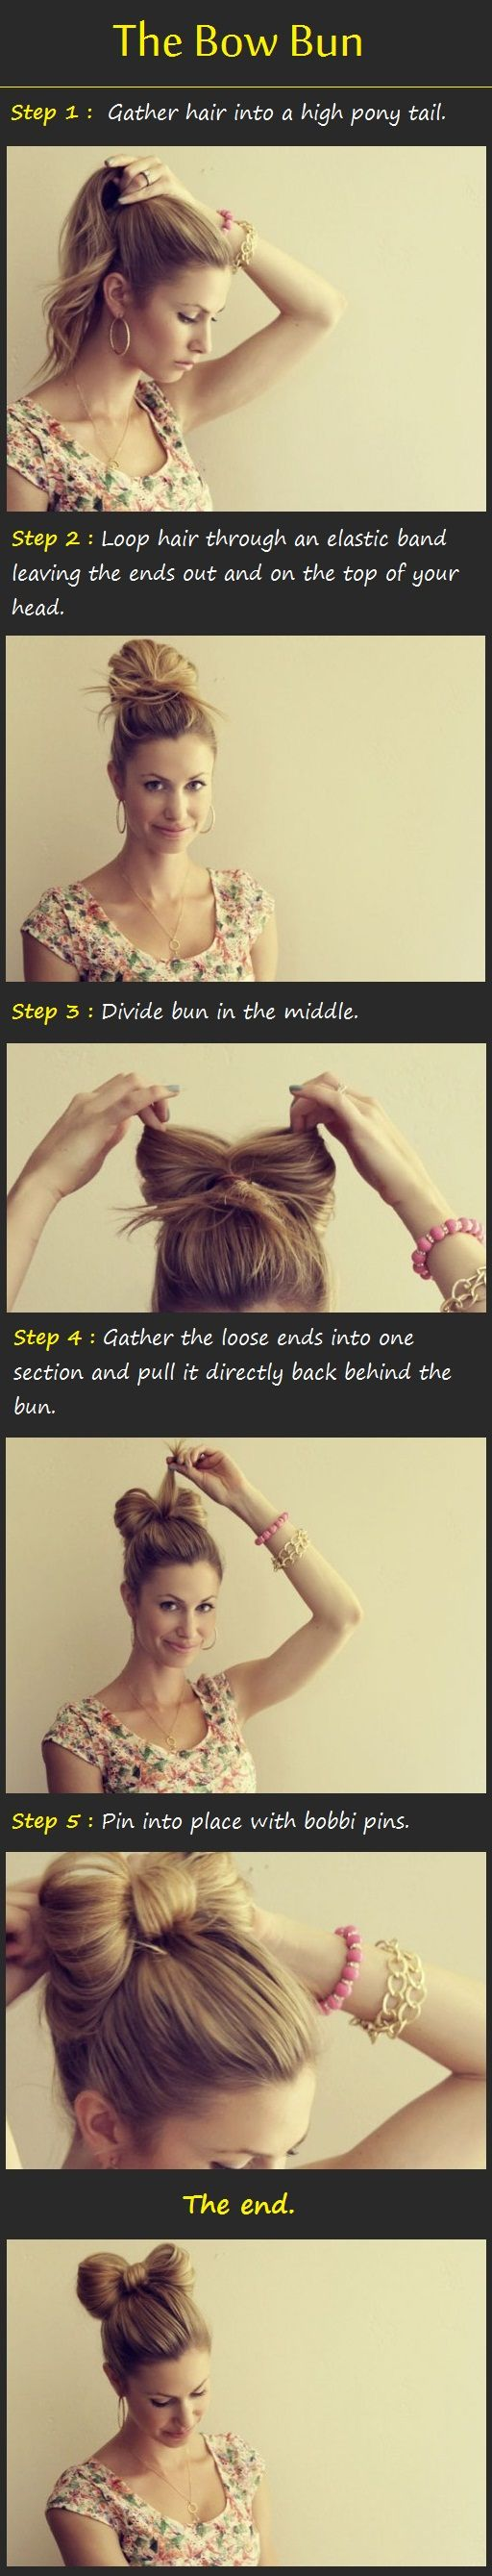 I'm going to try this...